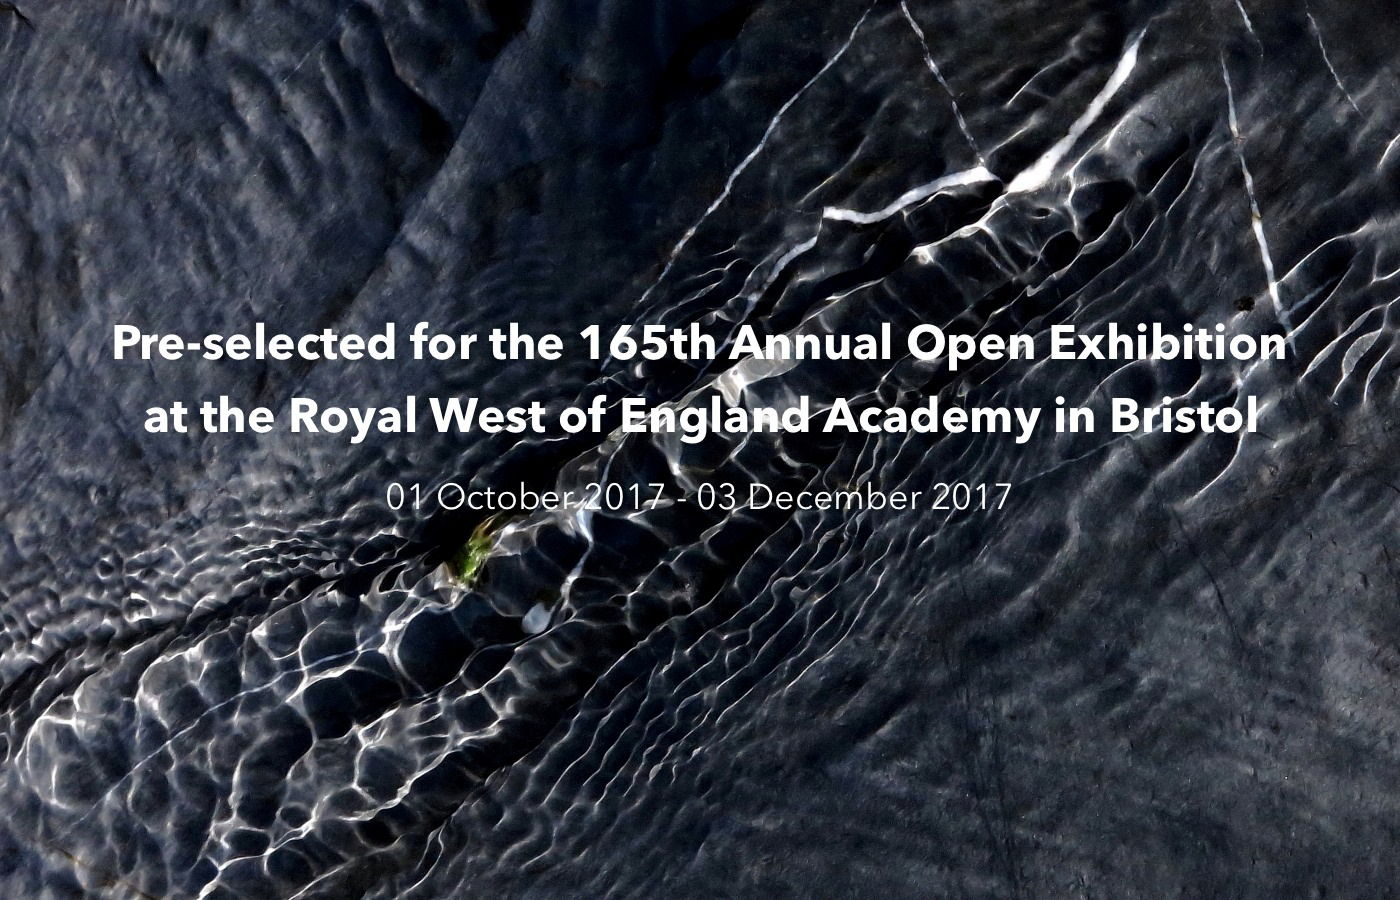 pre-selected for the 165th Annual Open Exhibition at the Royal West of England Academy in 2017